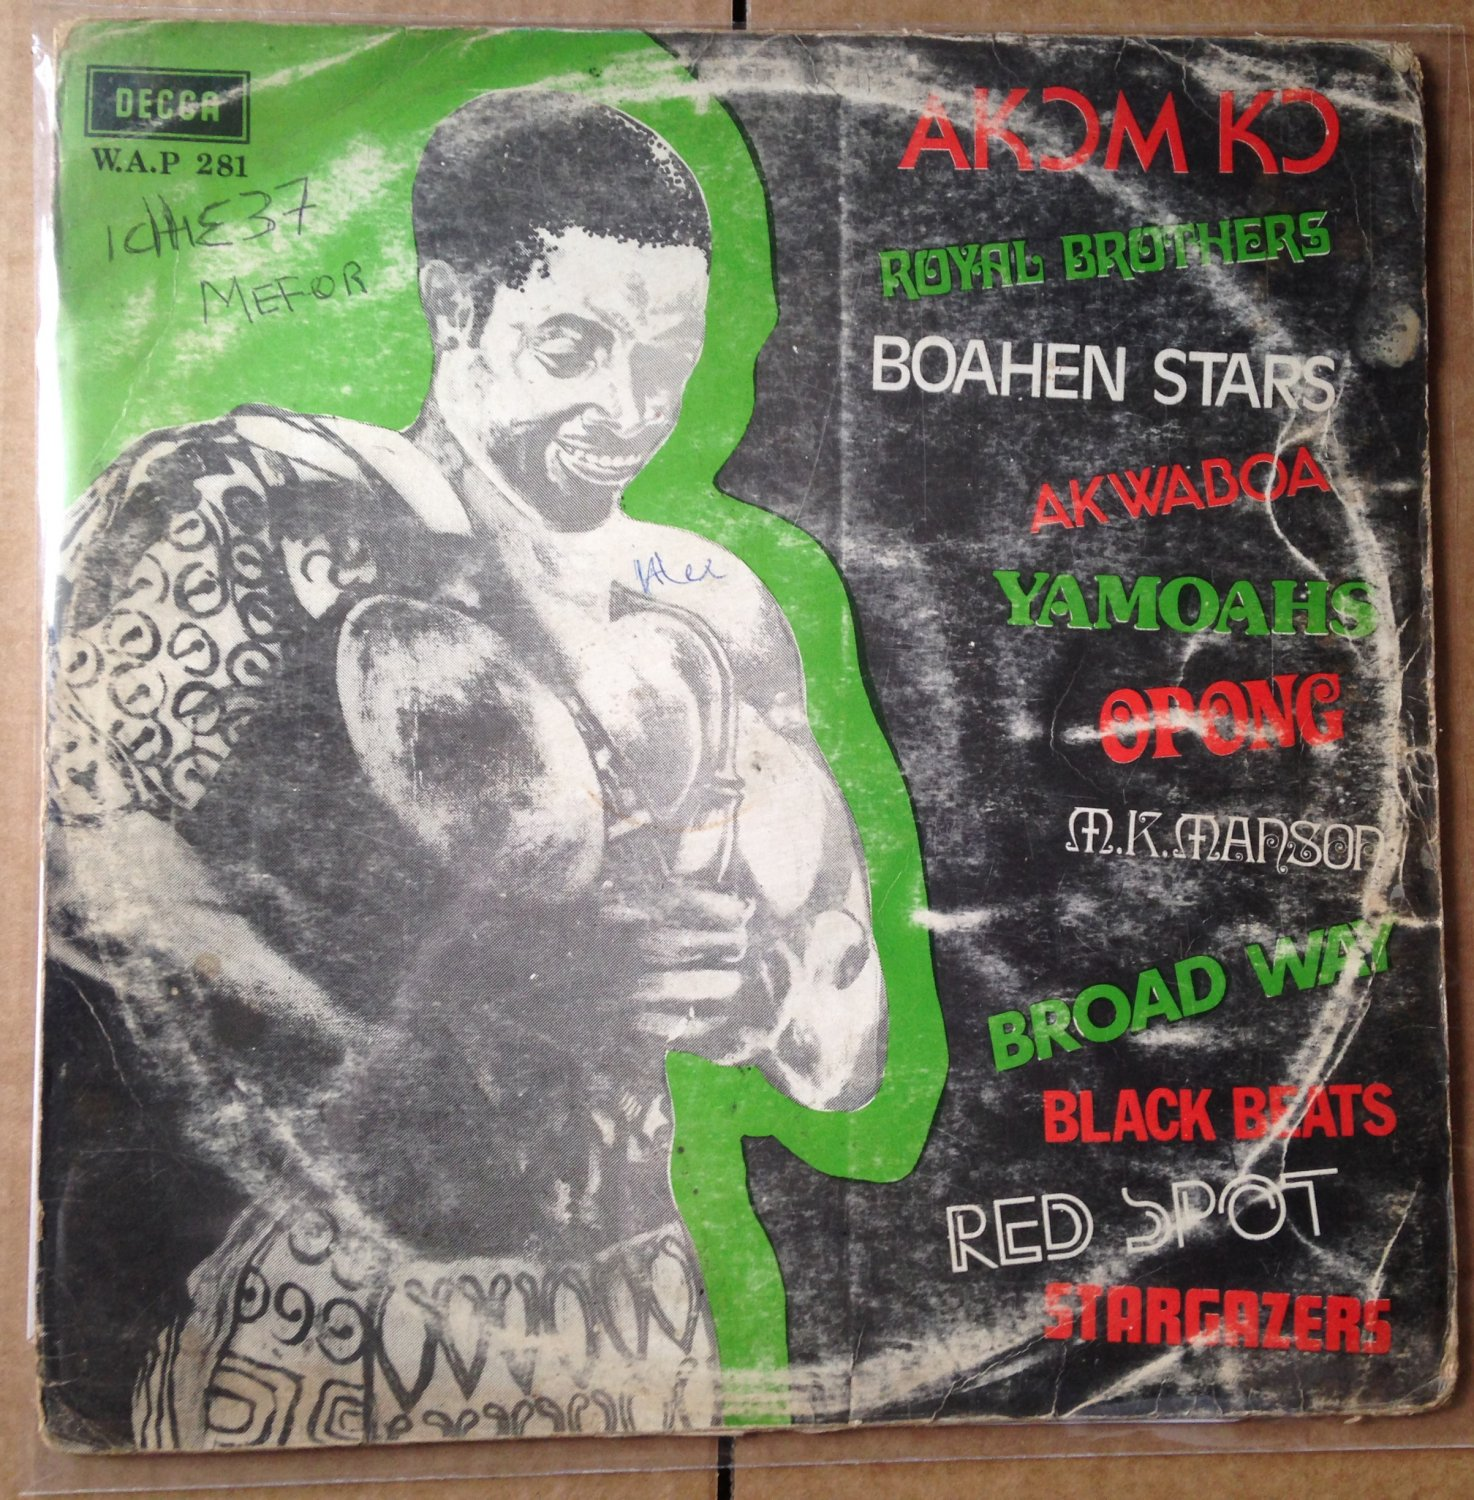 VARIOUS LP akomko GHANA HIGHLIFE DECCA mp3 LISTEN